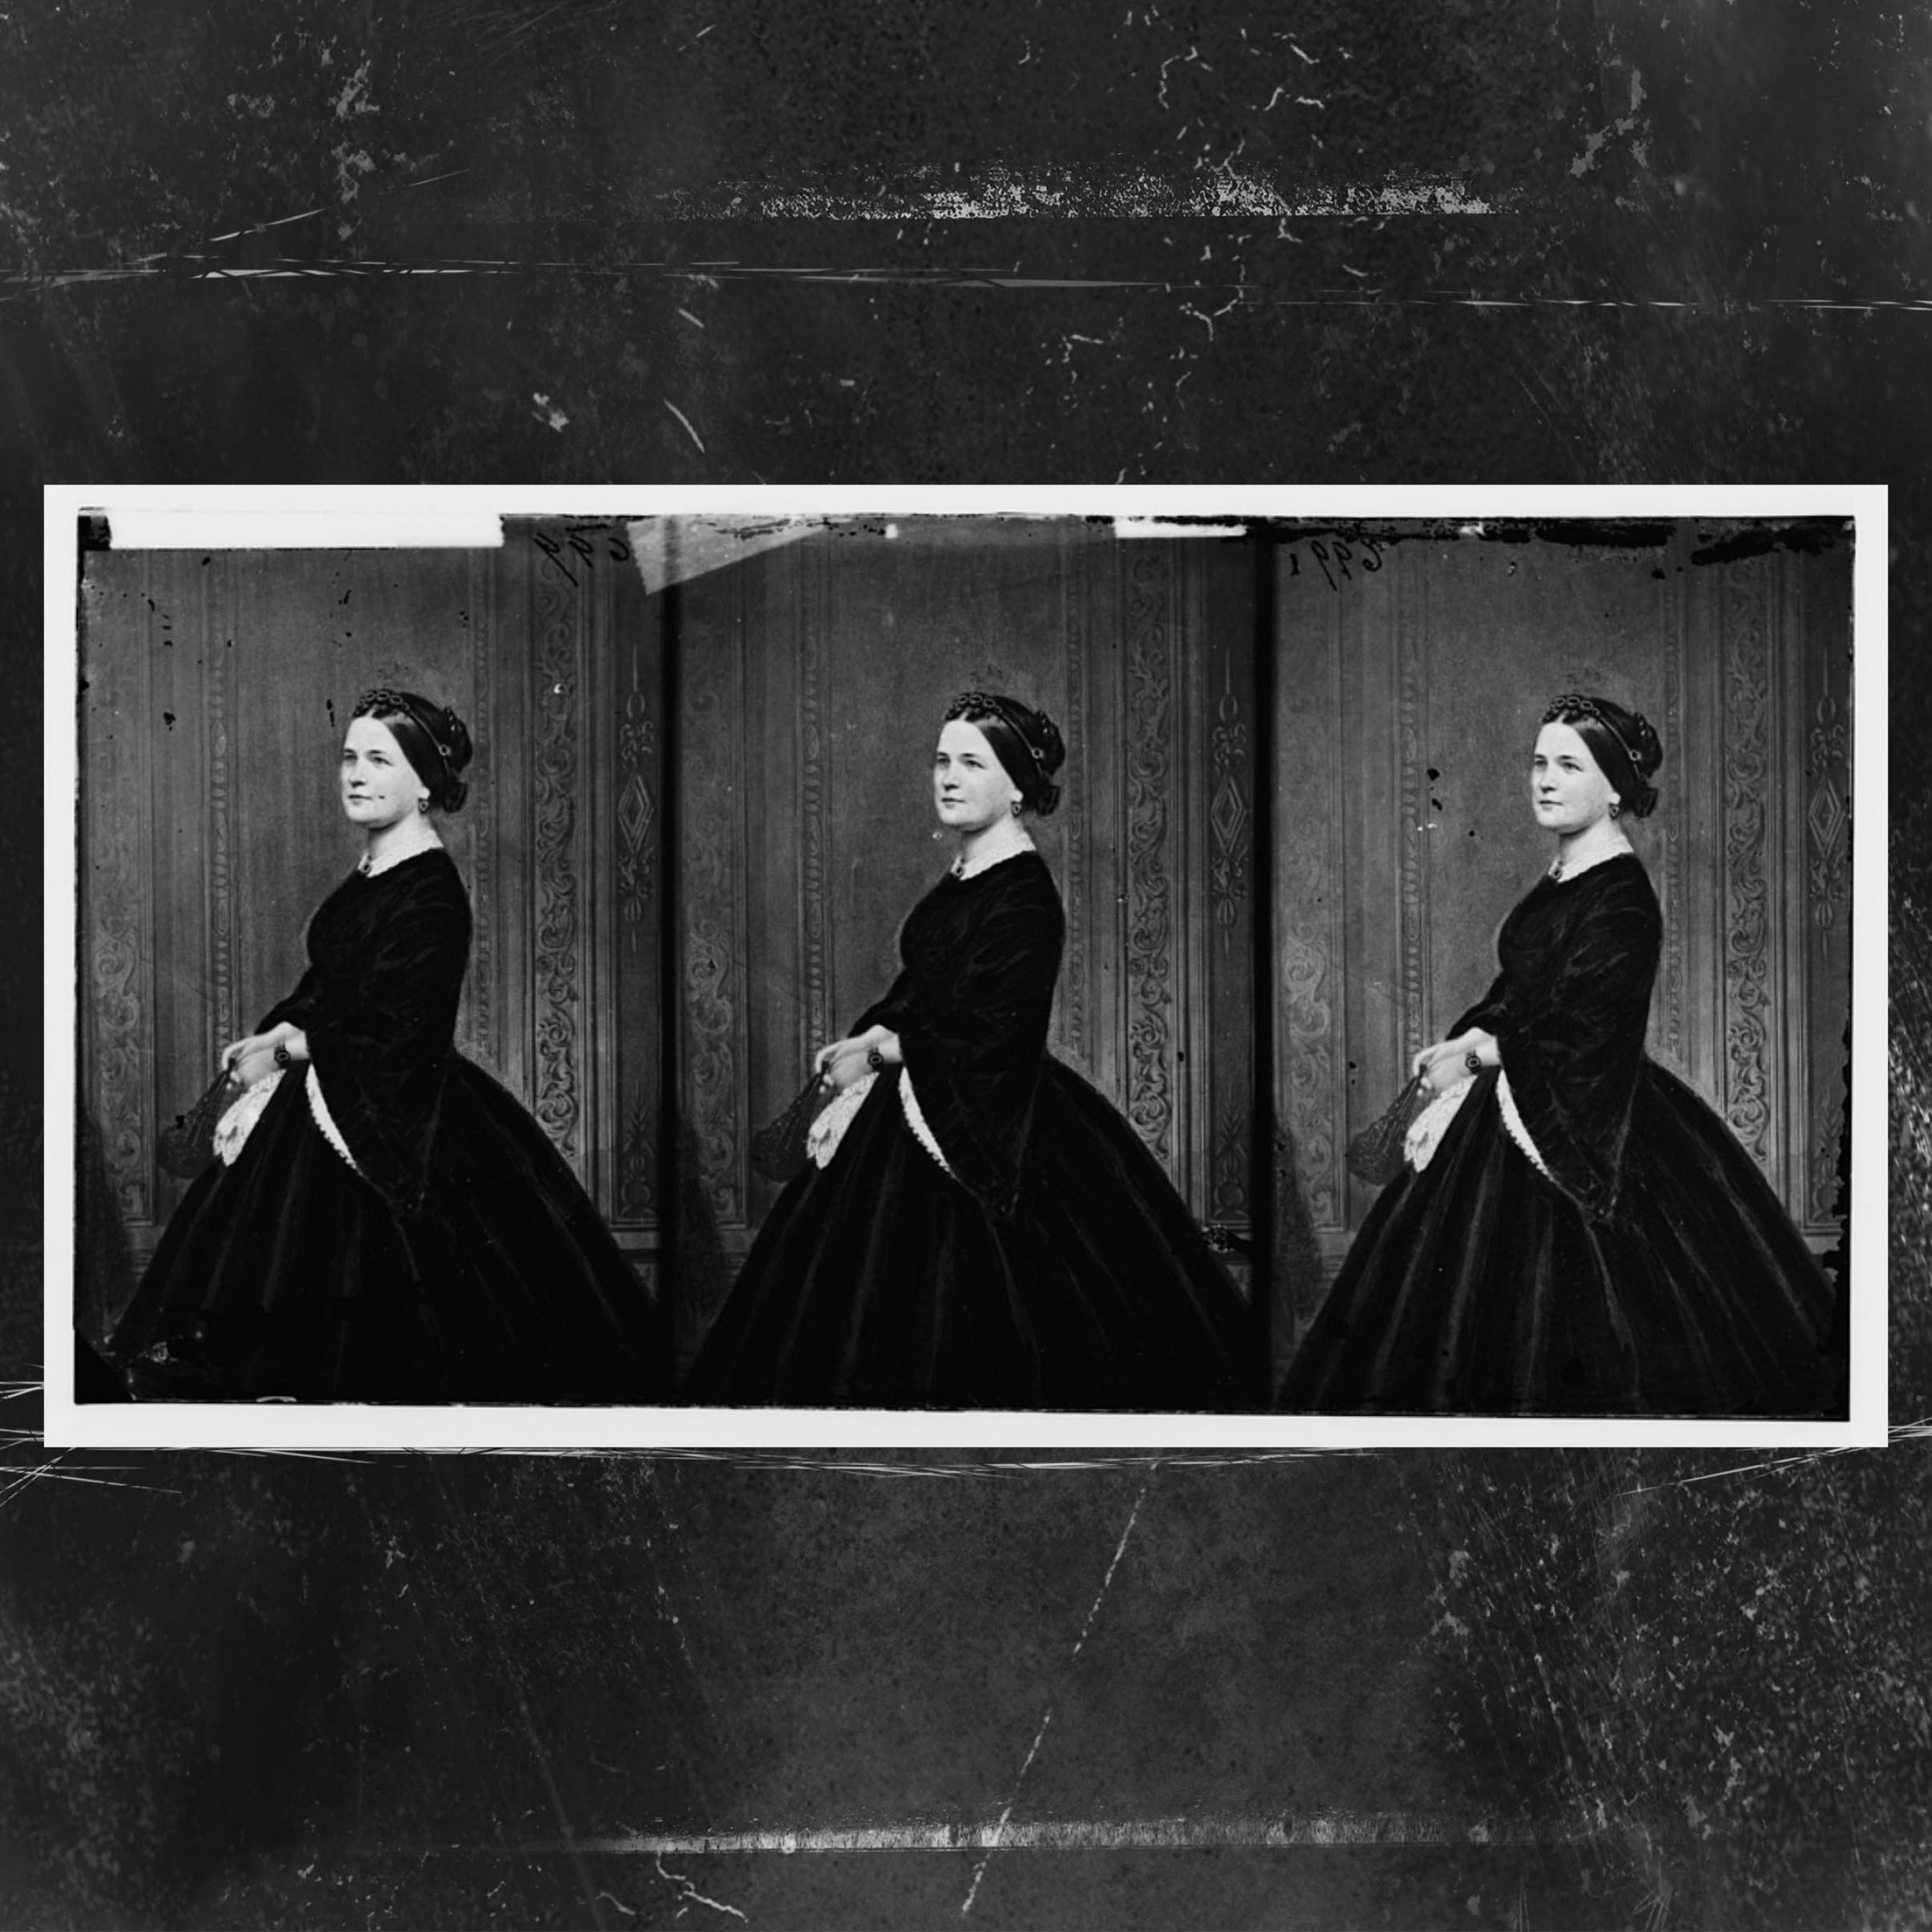 Mary Todd Lincoln's Silver Service Scandal